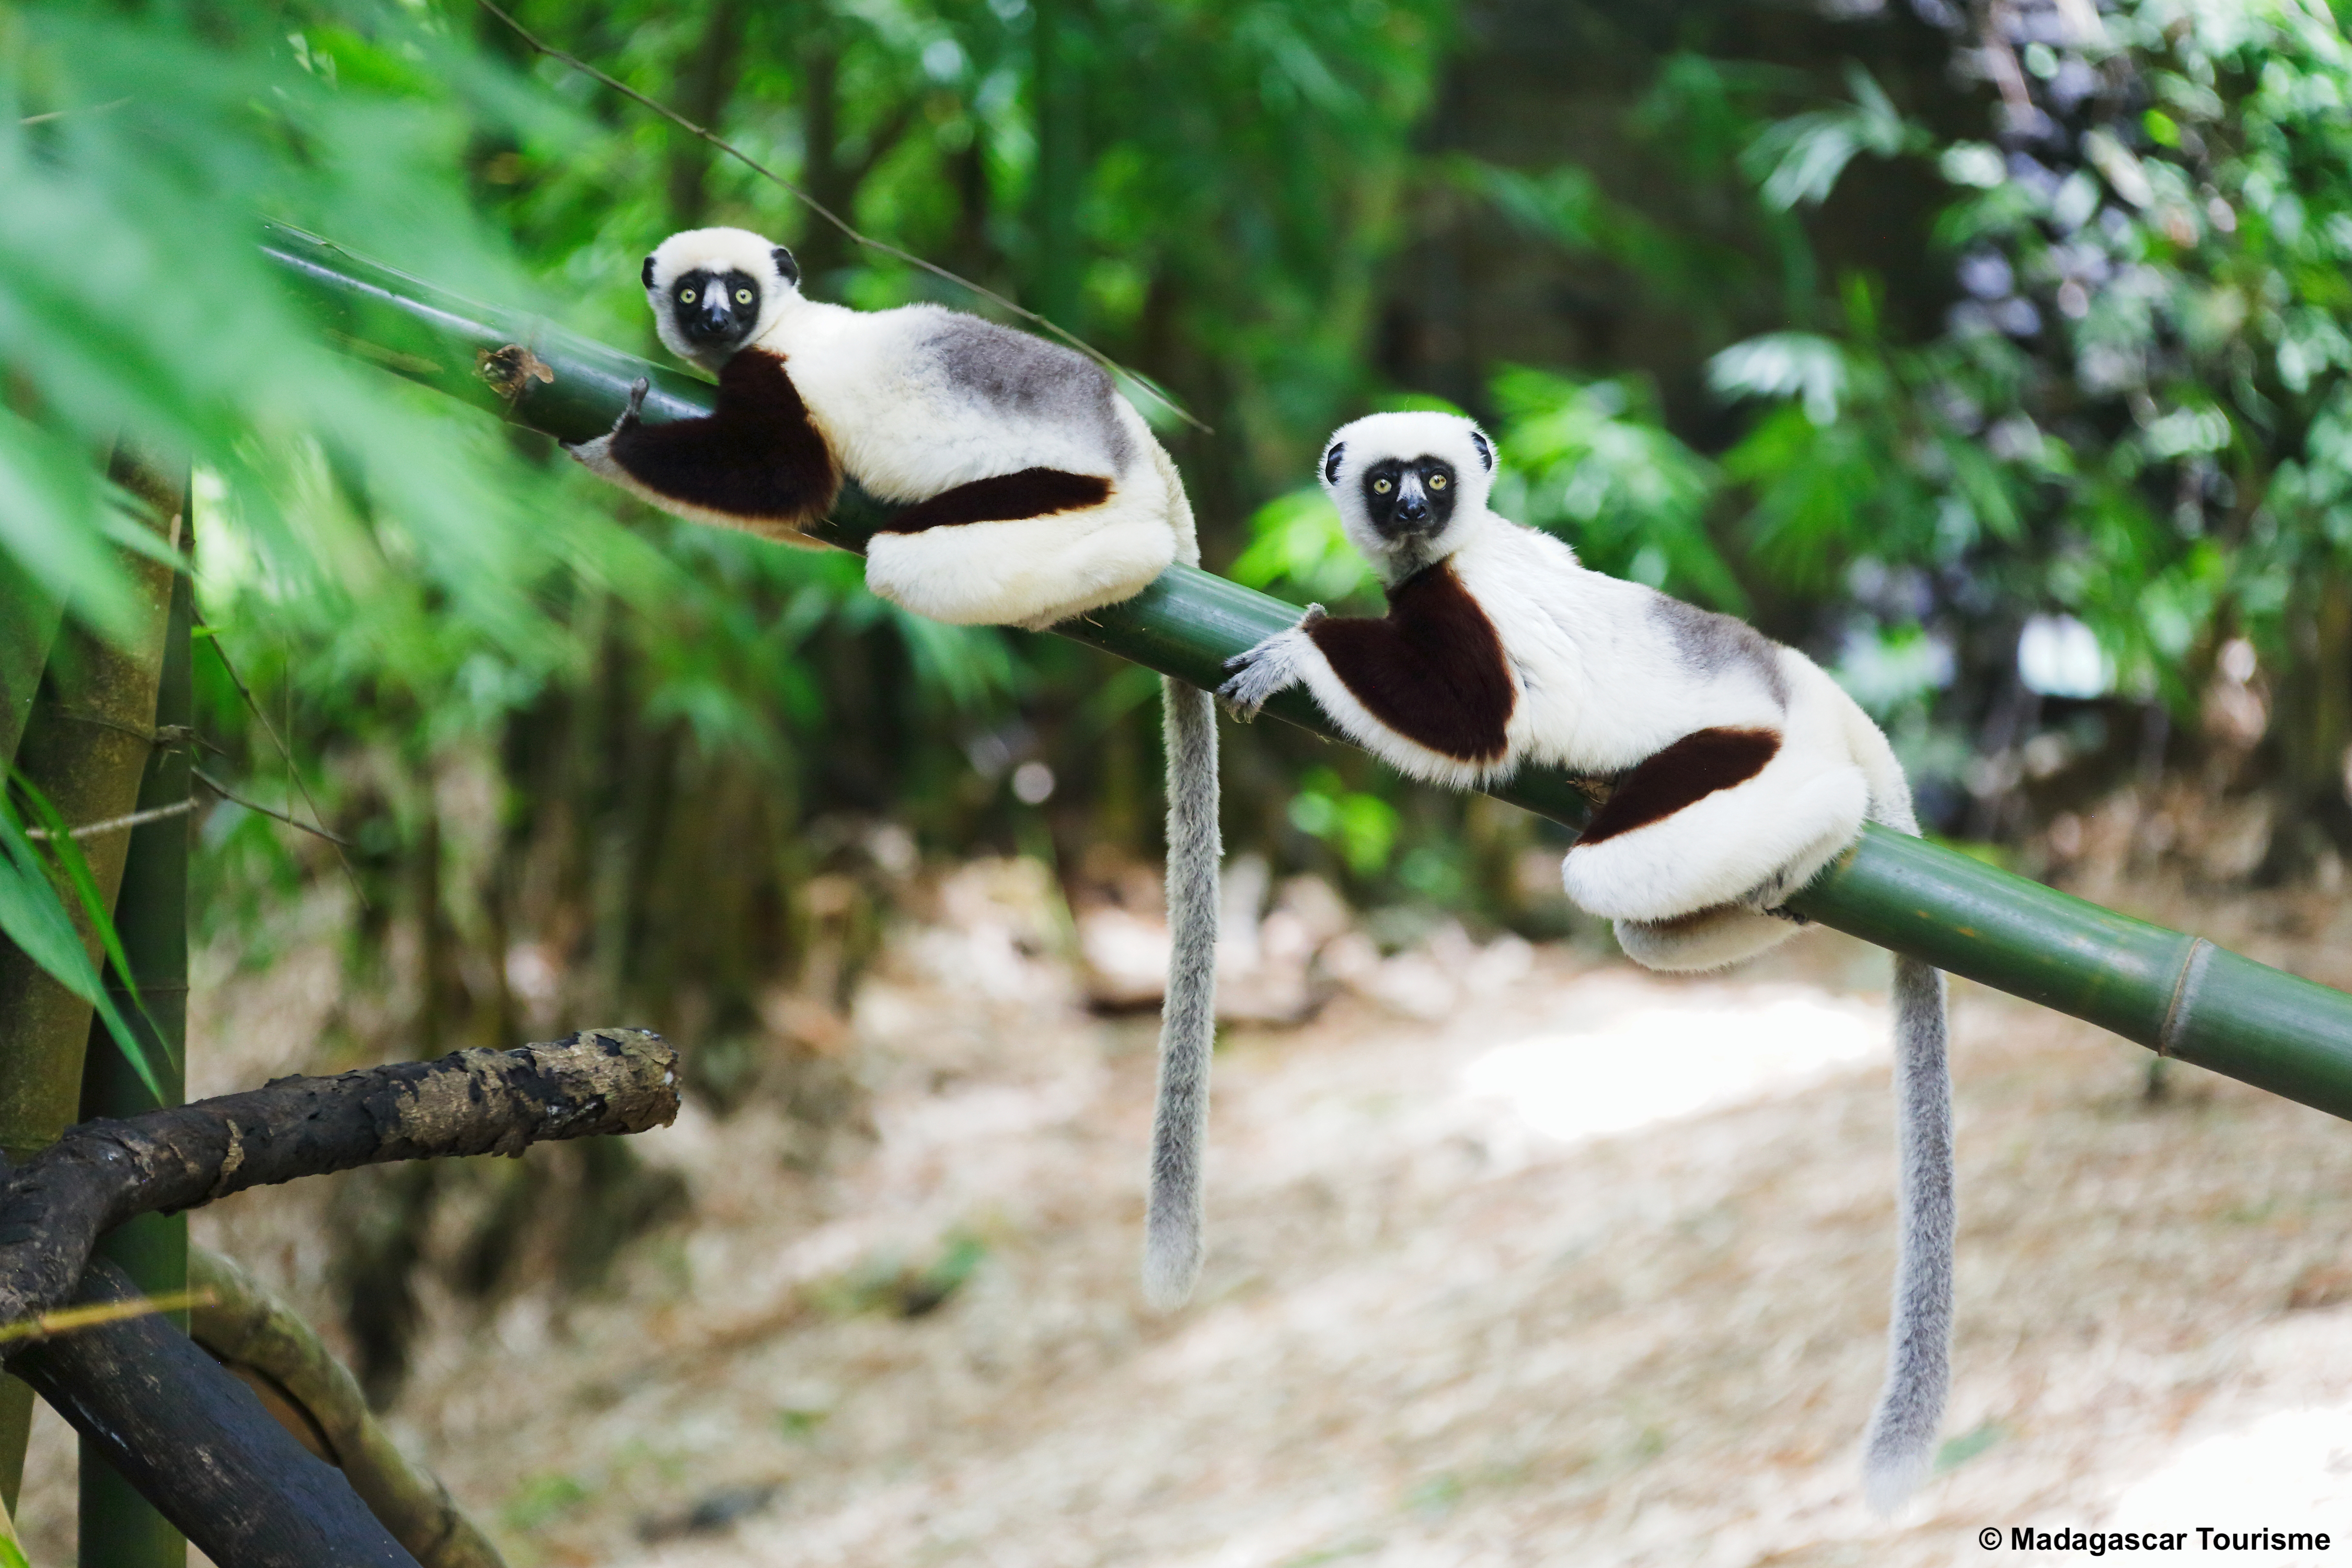 http://www.turismoitalianews.it/images/stories/madagascar/NosyBe07.jpg